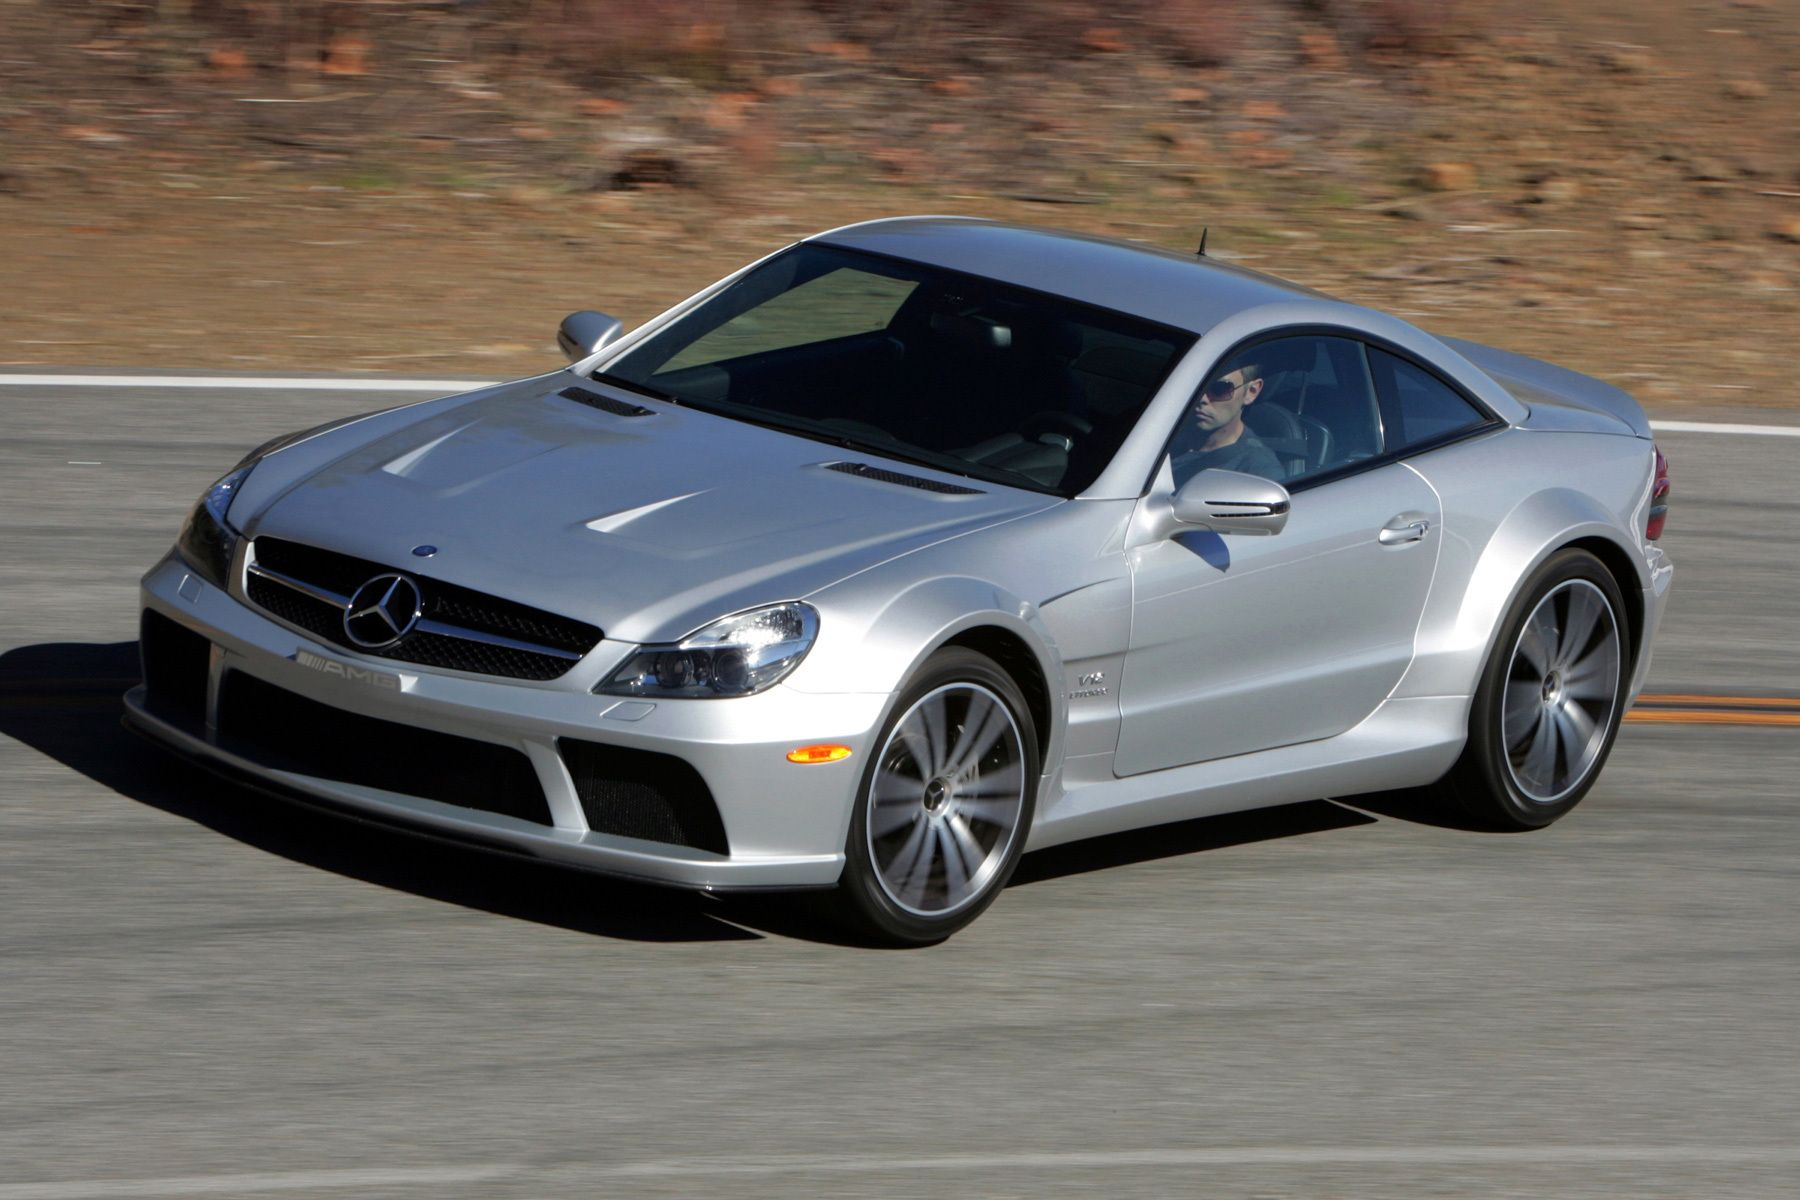 SL 65 AMG Black Series